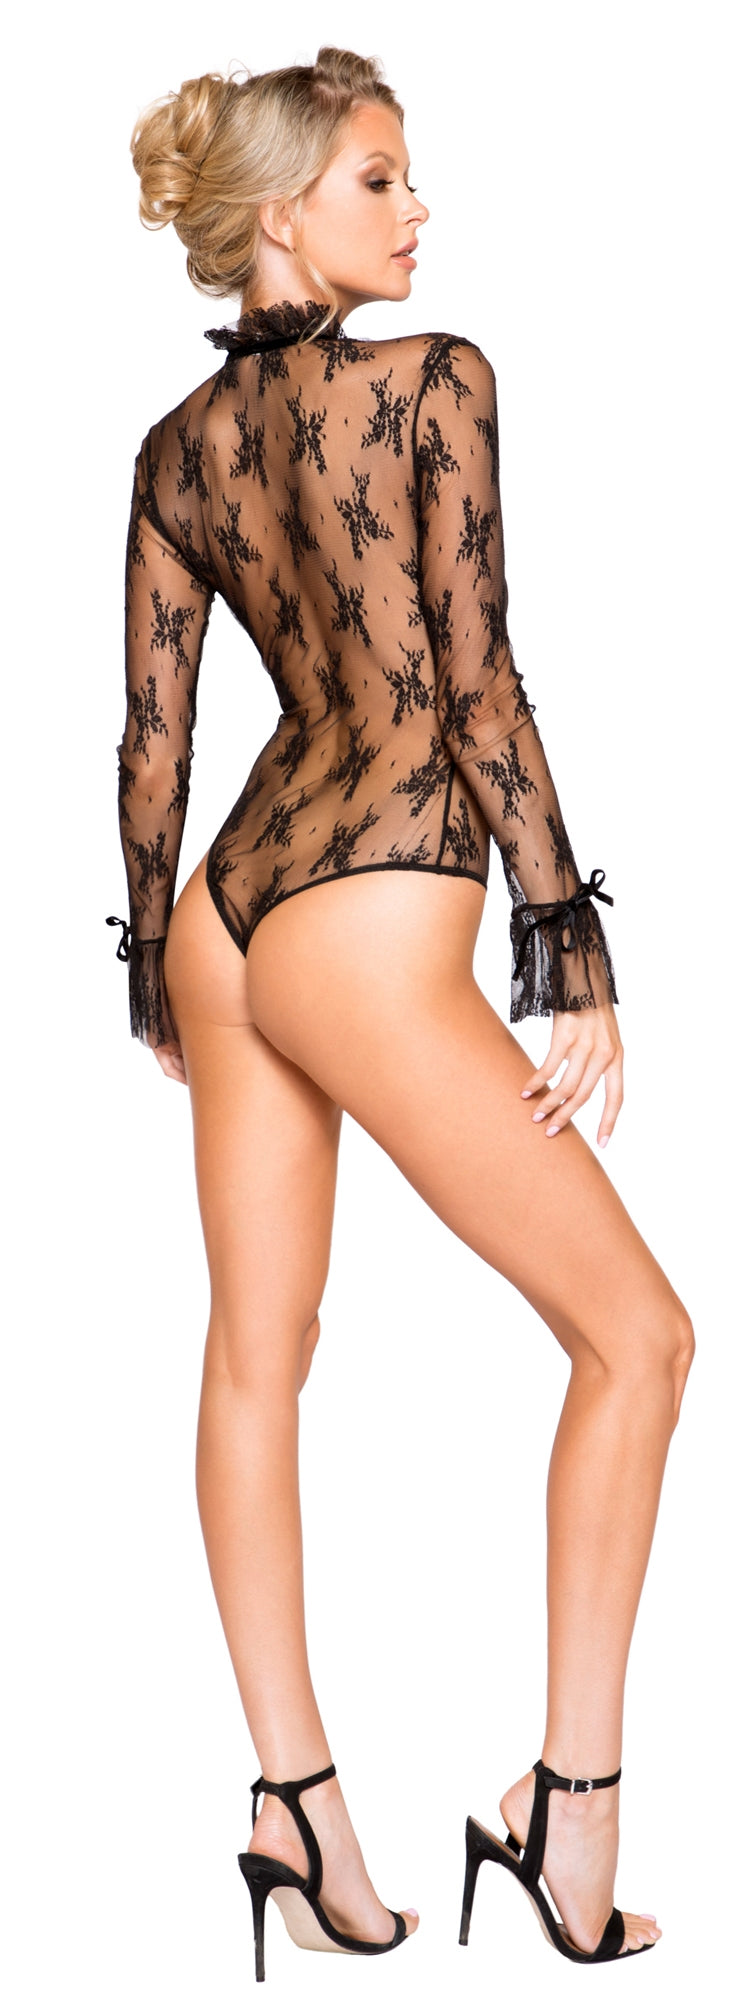 RM-LI248 Long sleeve sheer teddy back